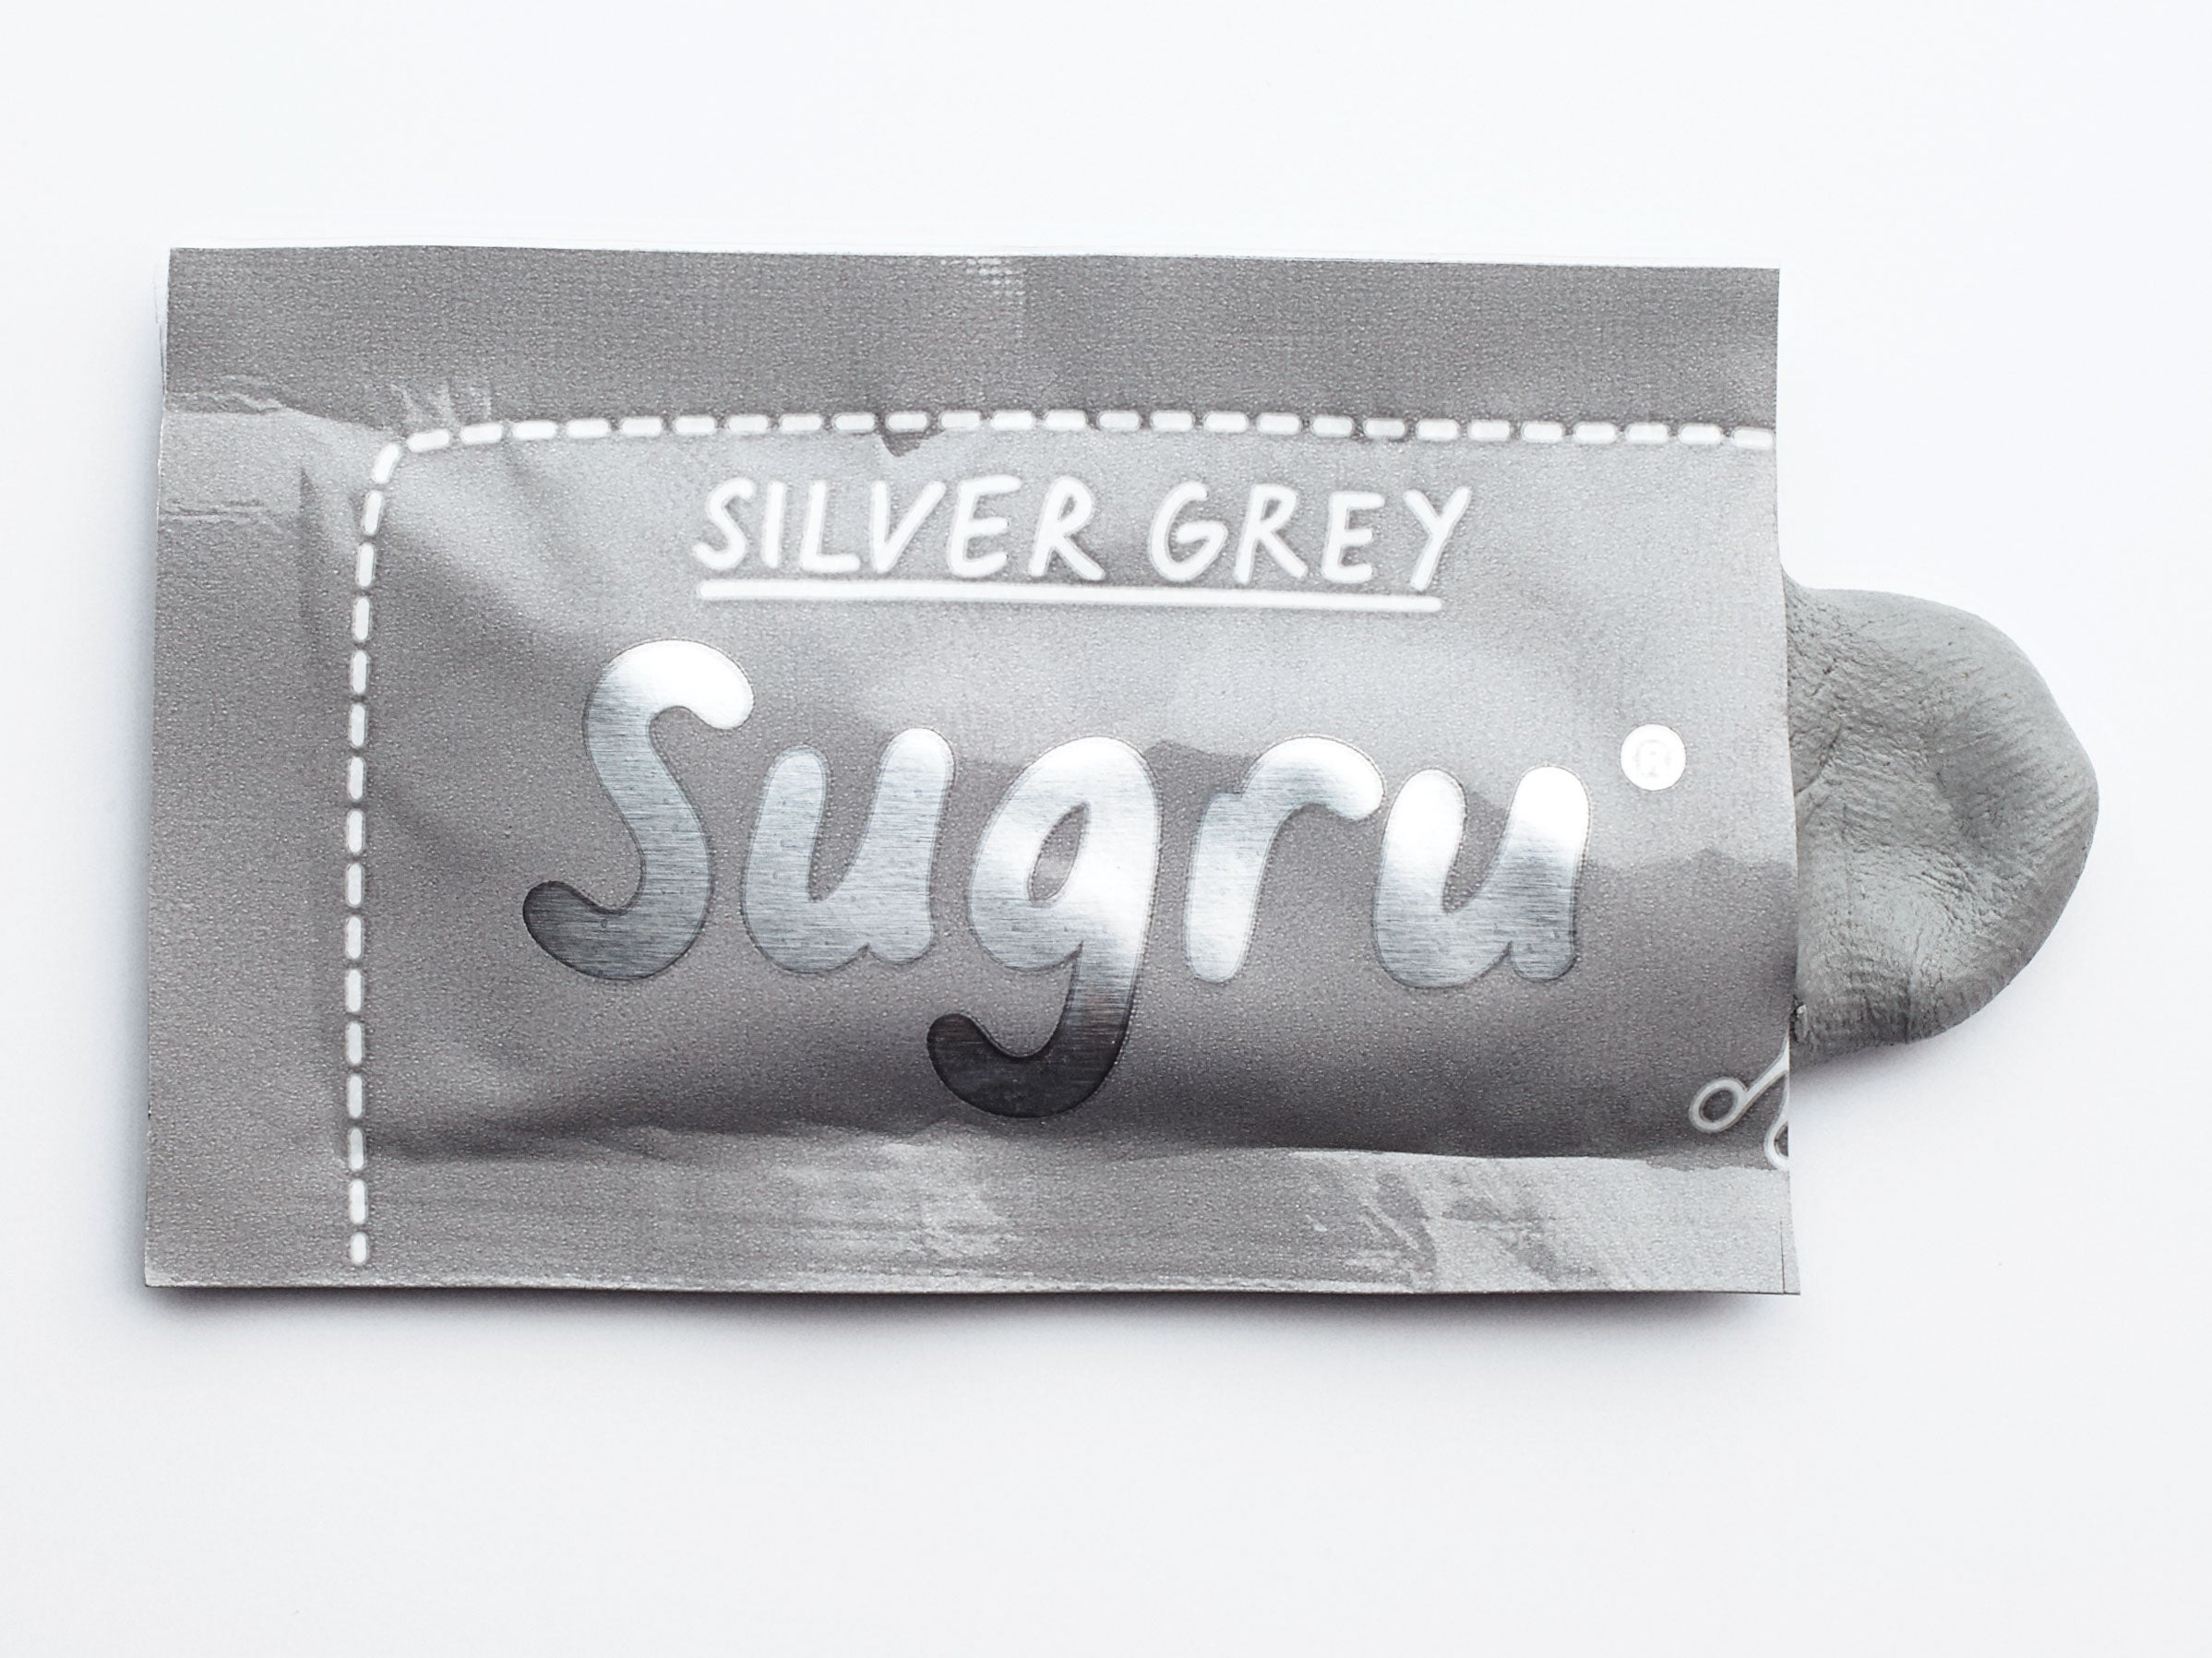 Sugru Is The Play-Doh Of Glue